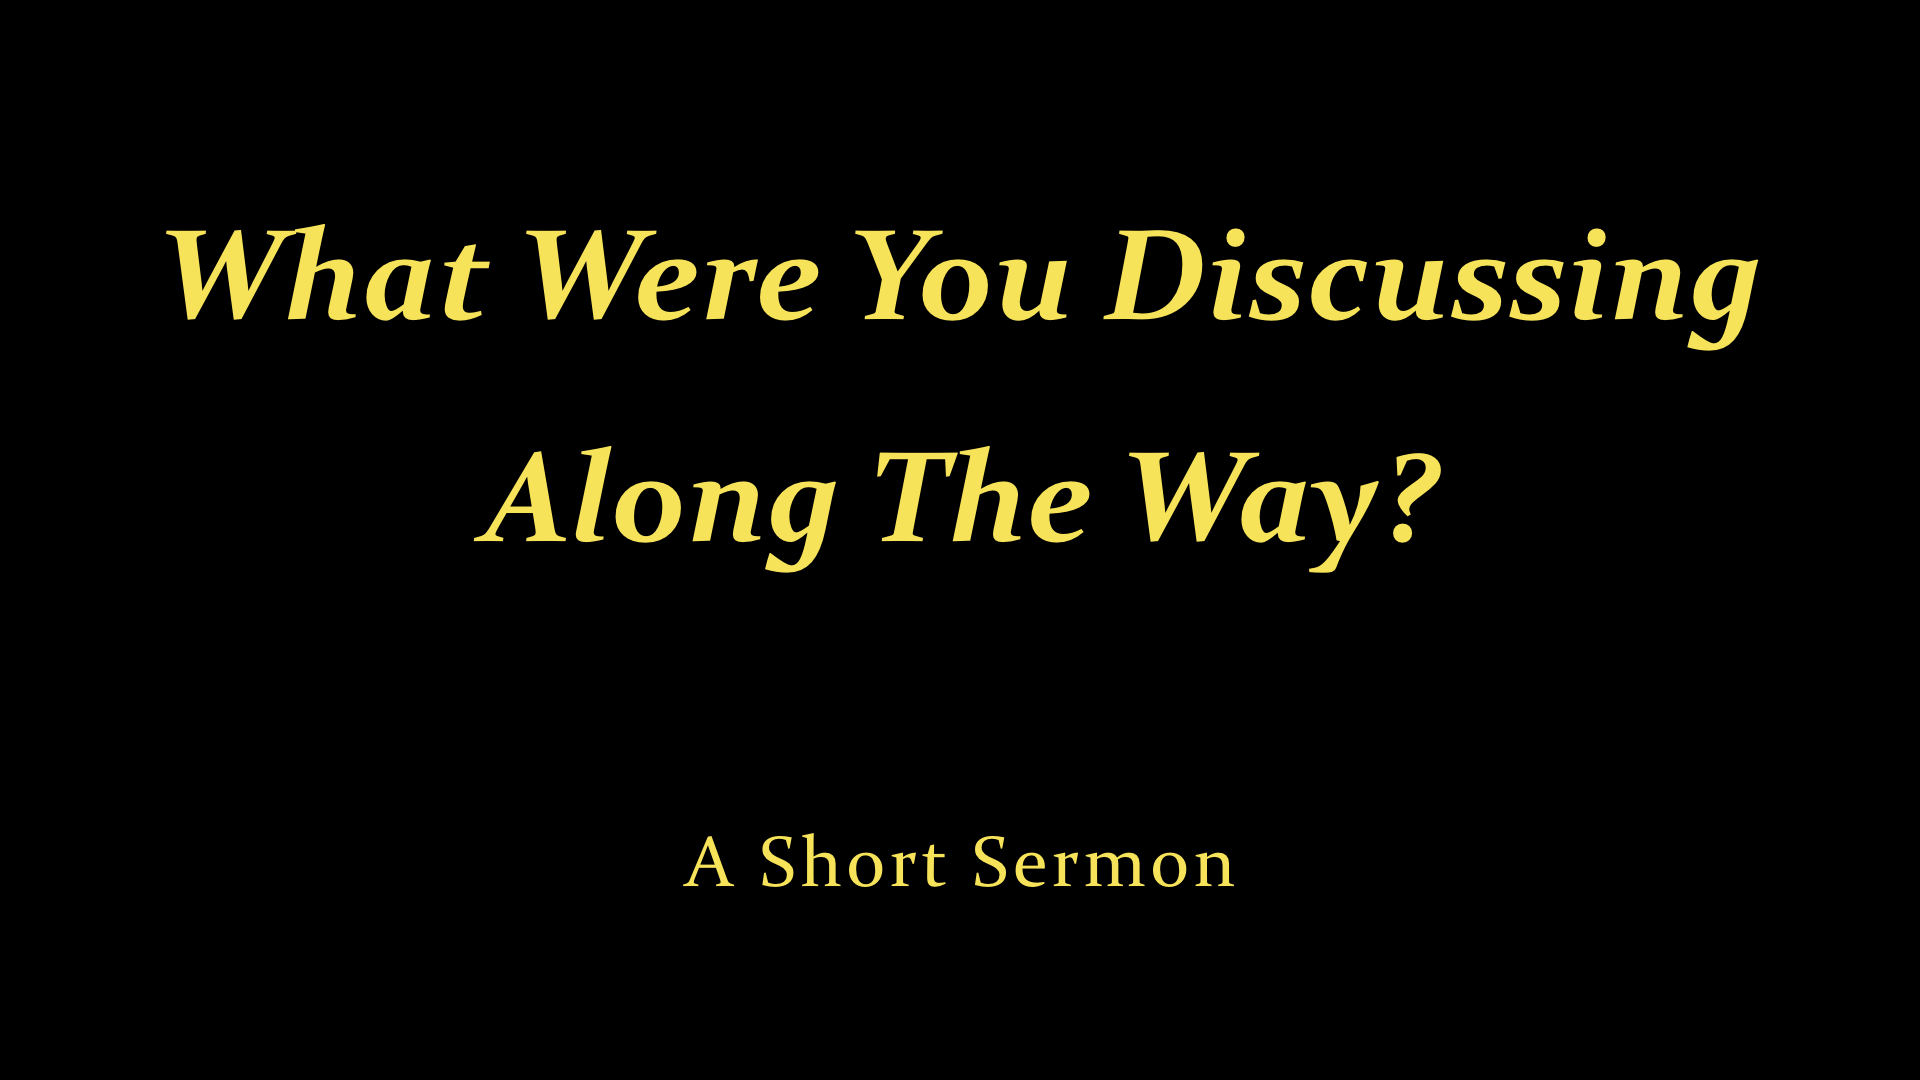 What Were You Discussing Along The Way? - A Short Sermon.jpeg